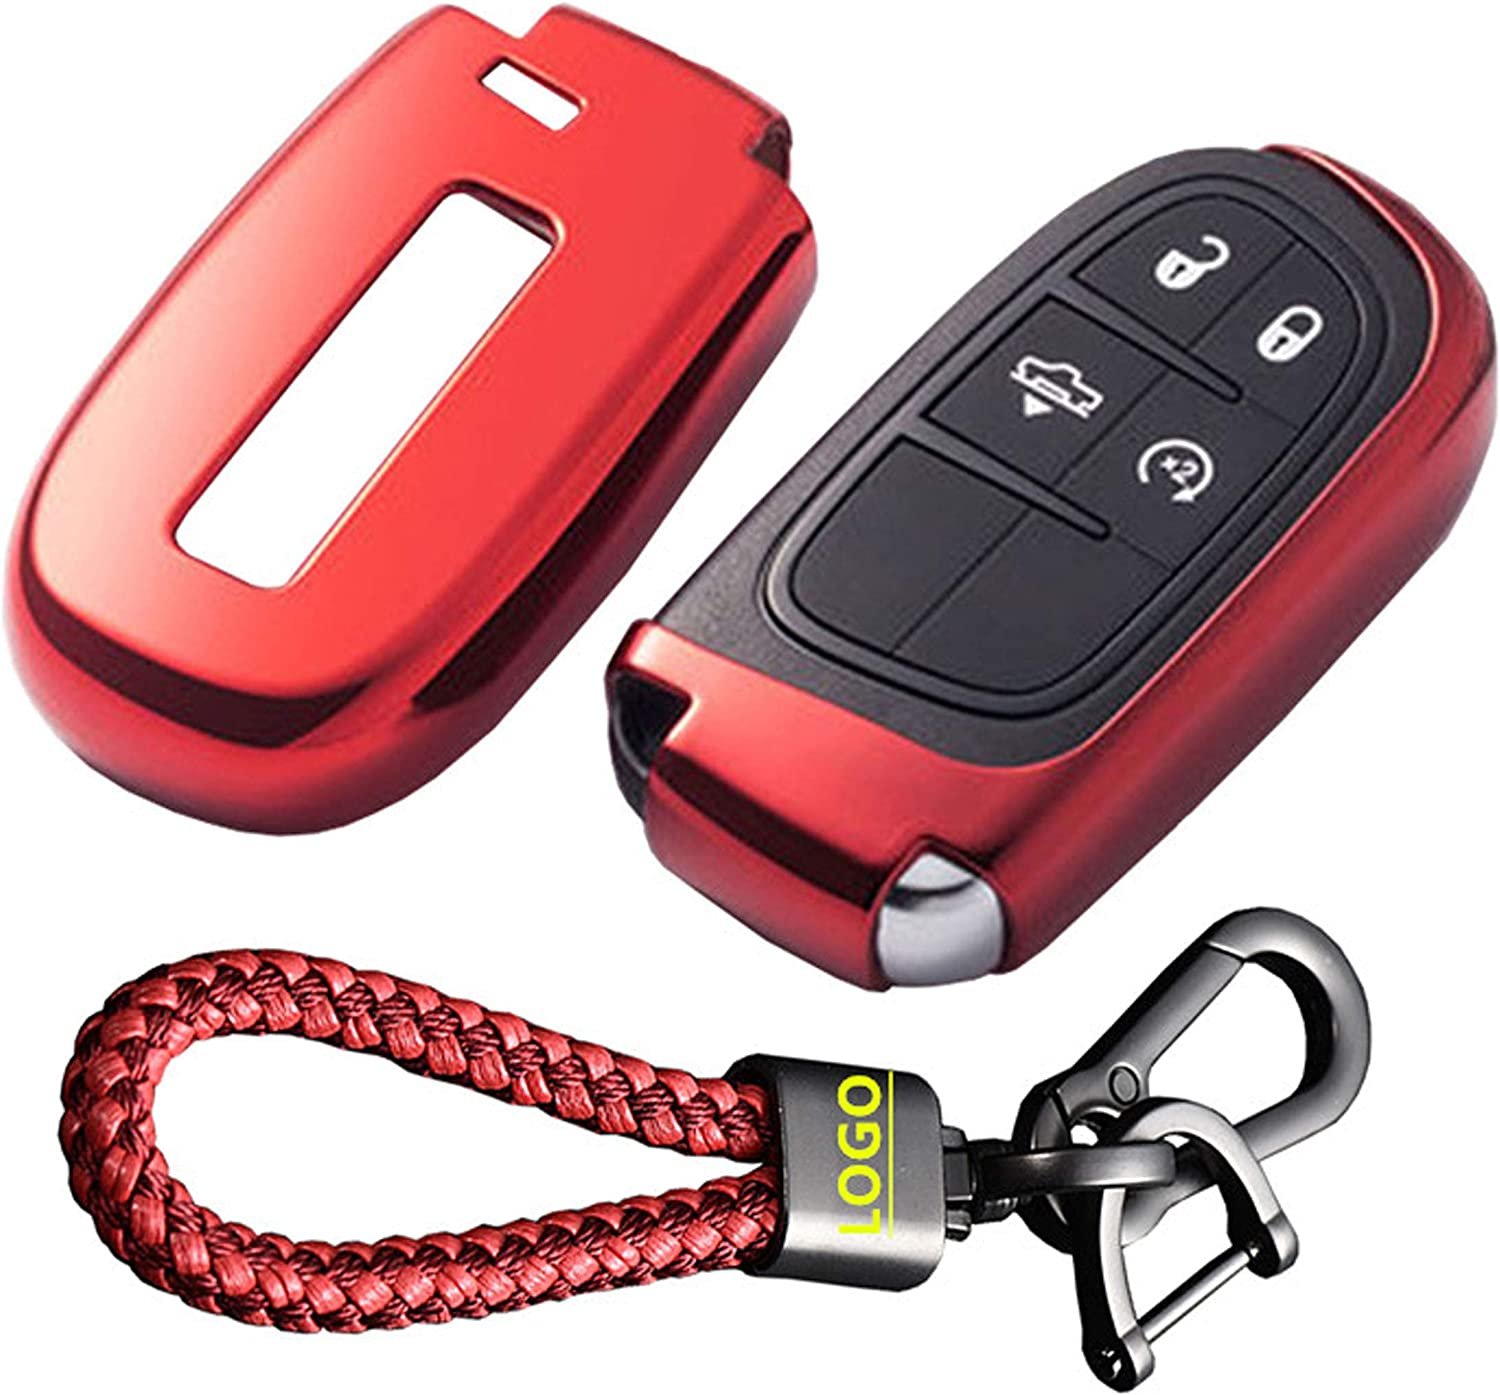 Premium Soft TPU Half Cover Protection Key Fob Cover with Have Logo Key Chain for Jeep//Dodge//Chrysler Smart Remote Keyless Entry Key Case